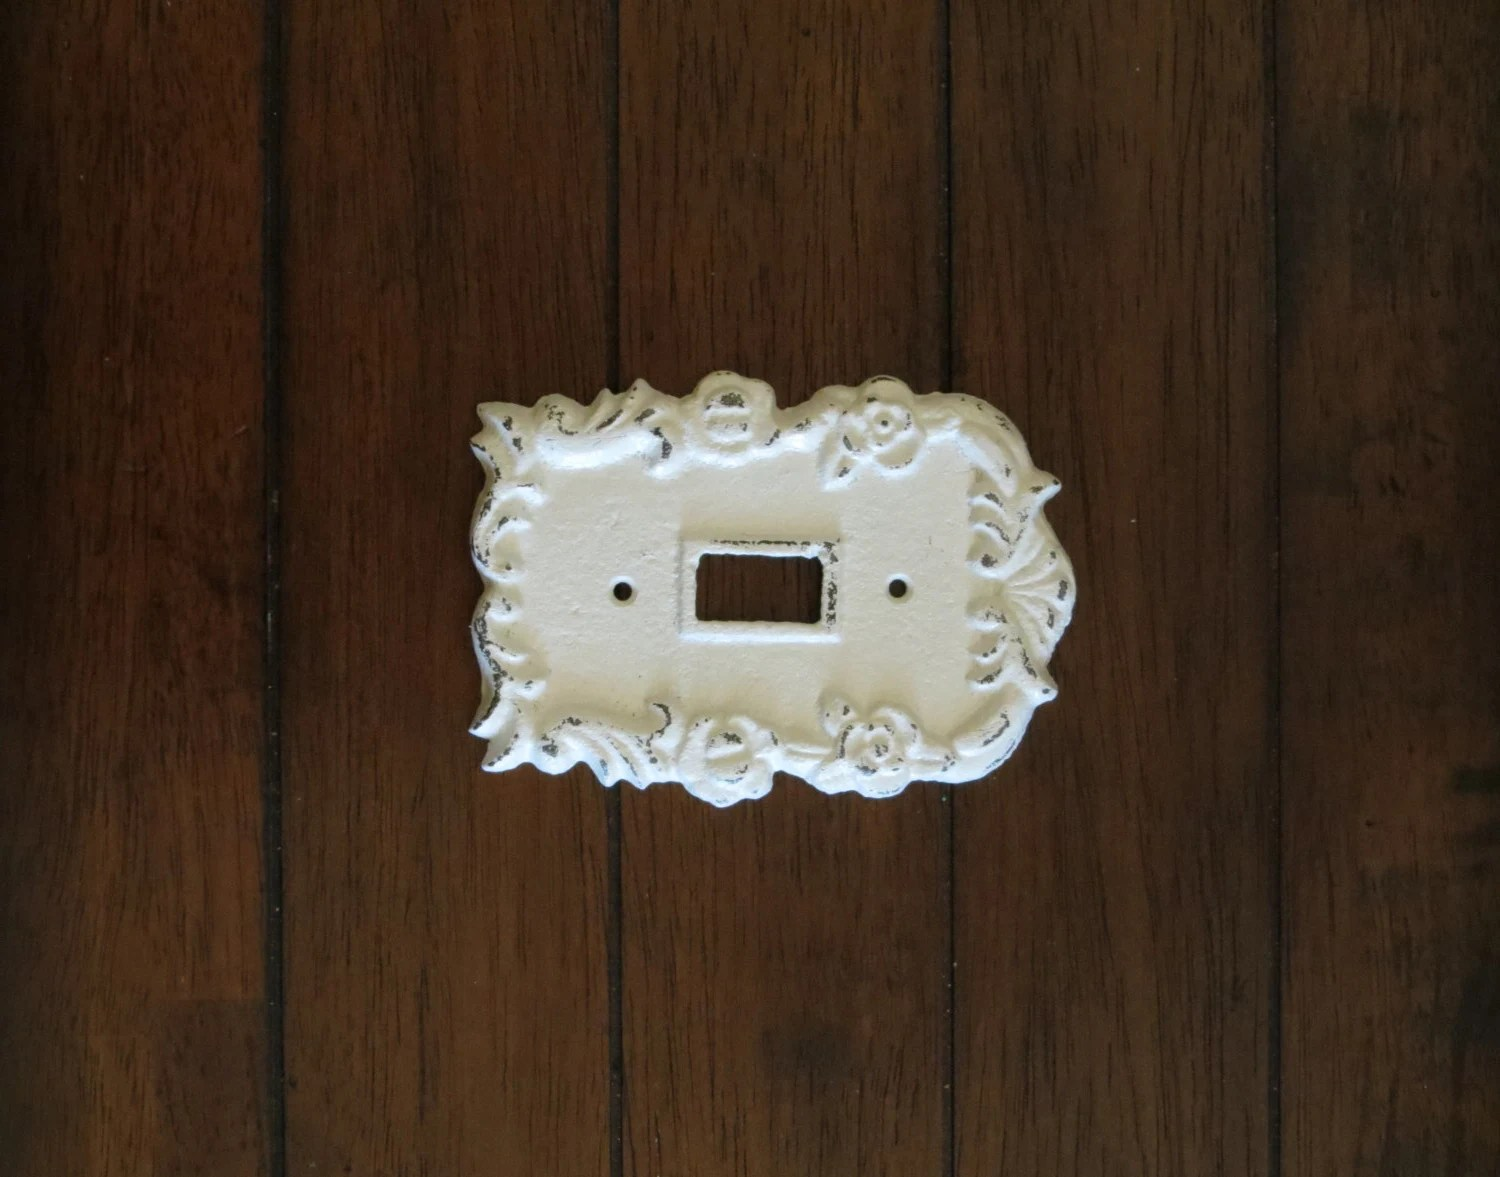 Vintage Light Switch Plate Covers Vintage Light Switch Covers